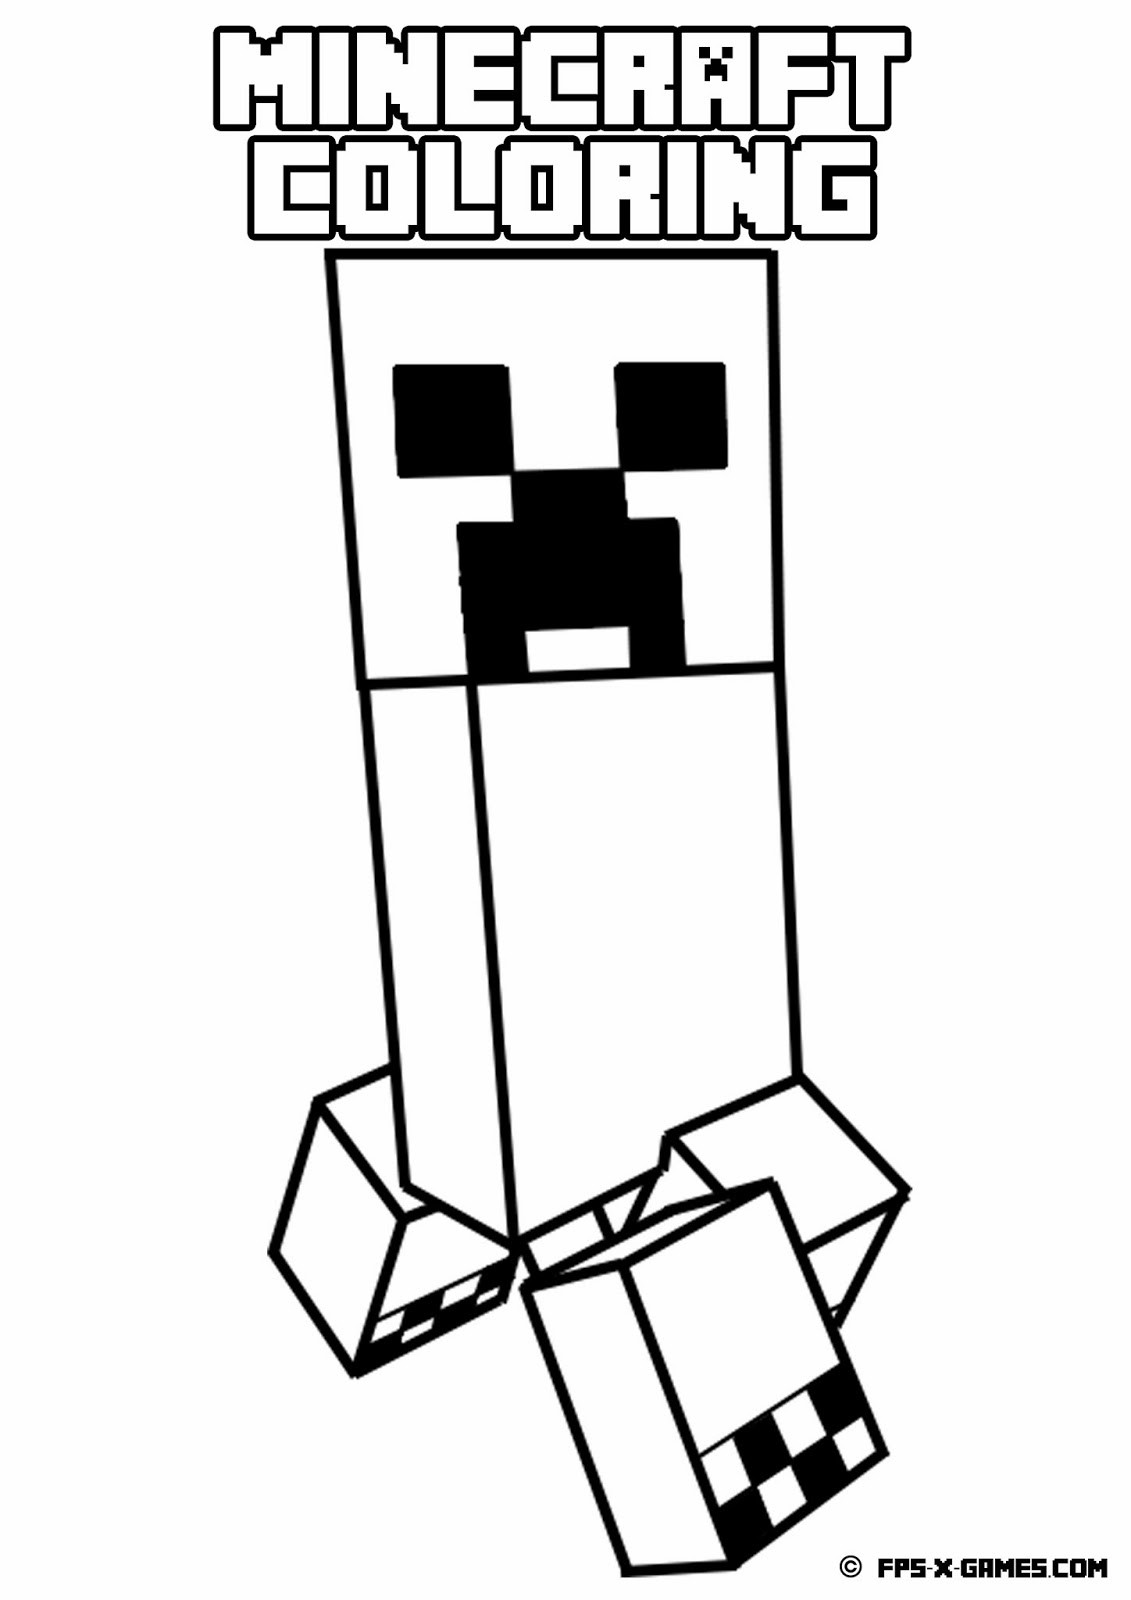 Top Minecraft Coloring Pages Steve With A Sword In Minecraft Creeper Colouring Pages 1131x1600 Wallpaper Teahub Io